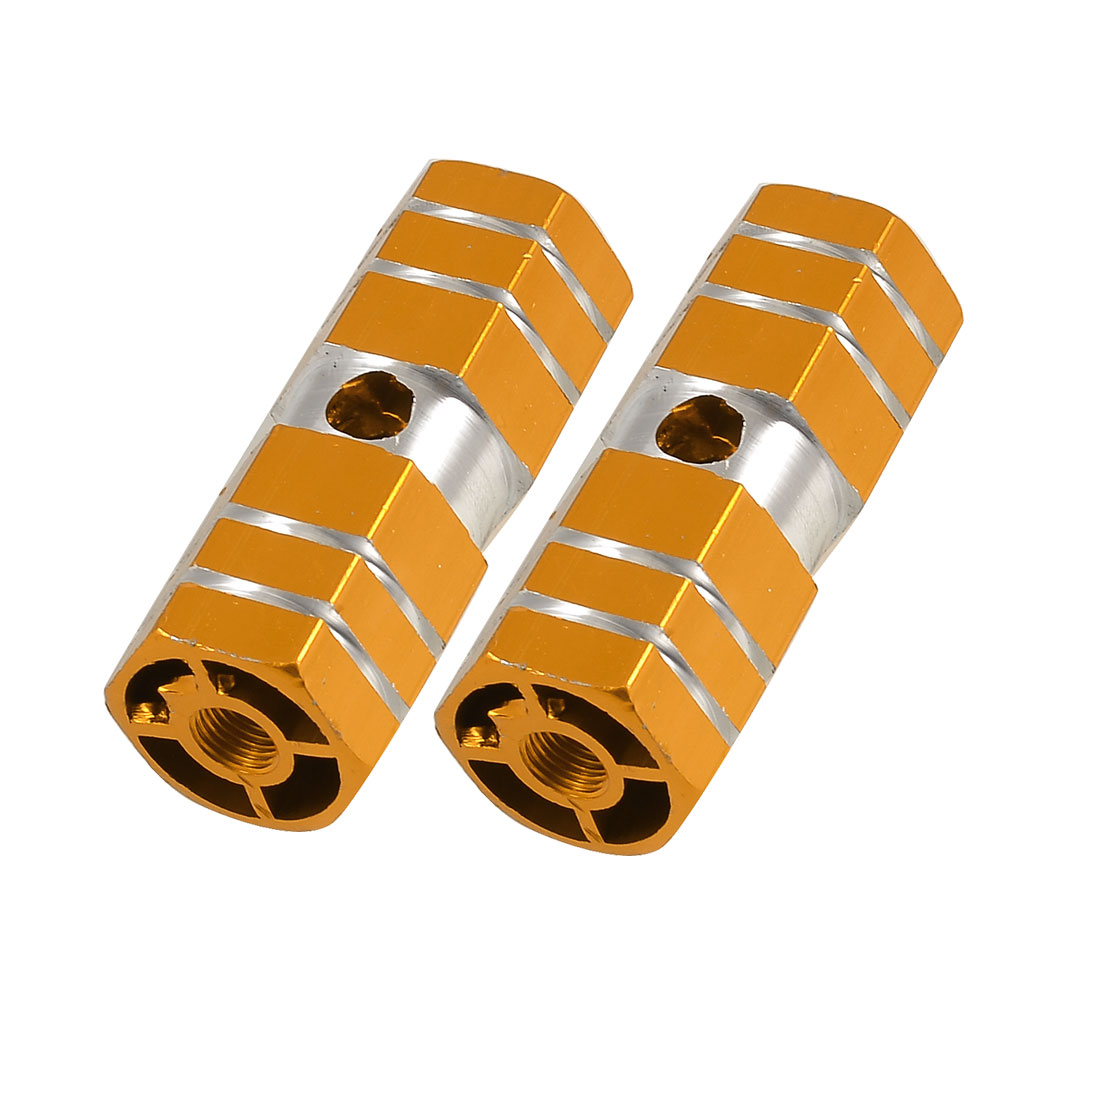 Two Tone Aluminum Nonslip Bicycle Front Rear Axle Foot Pegs Pair